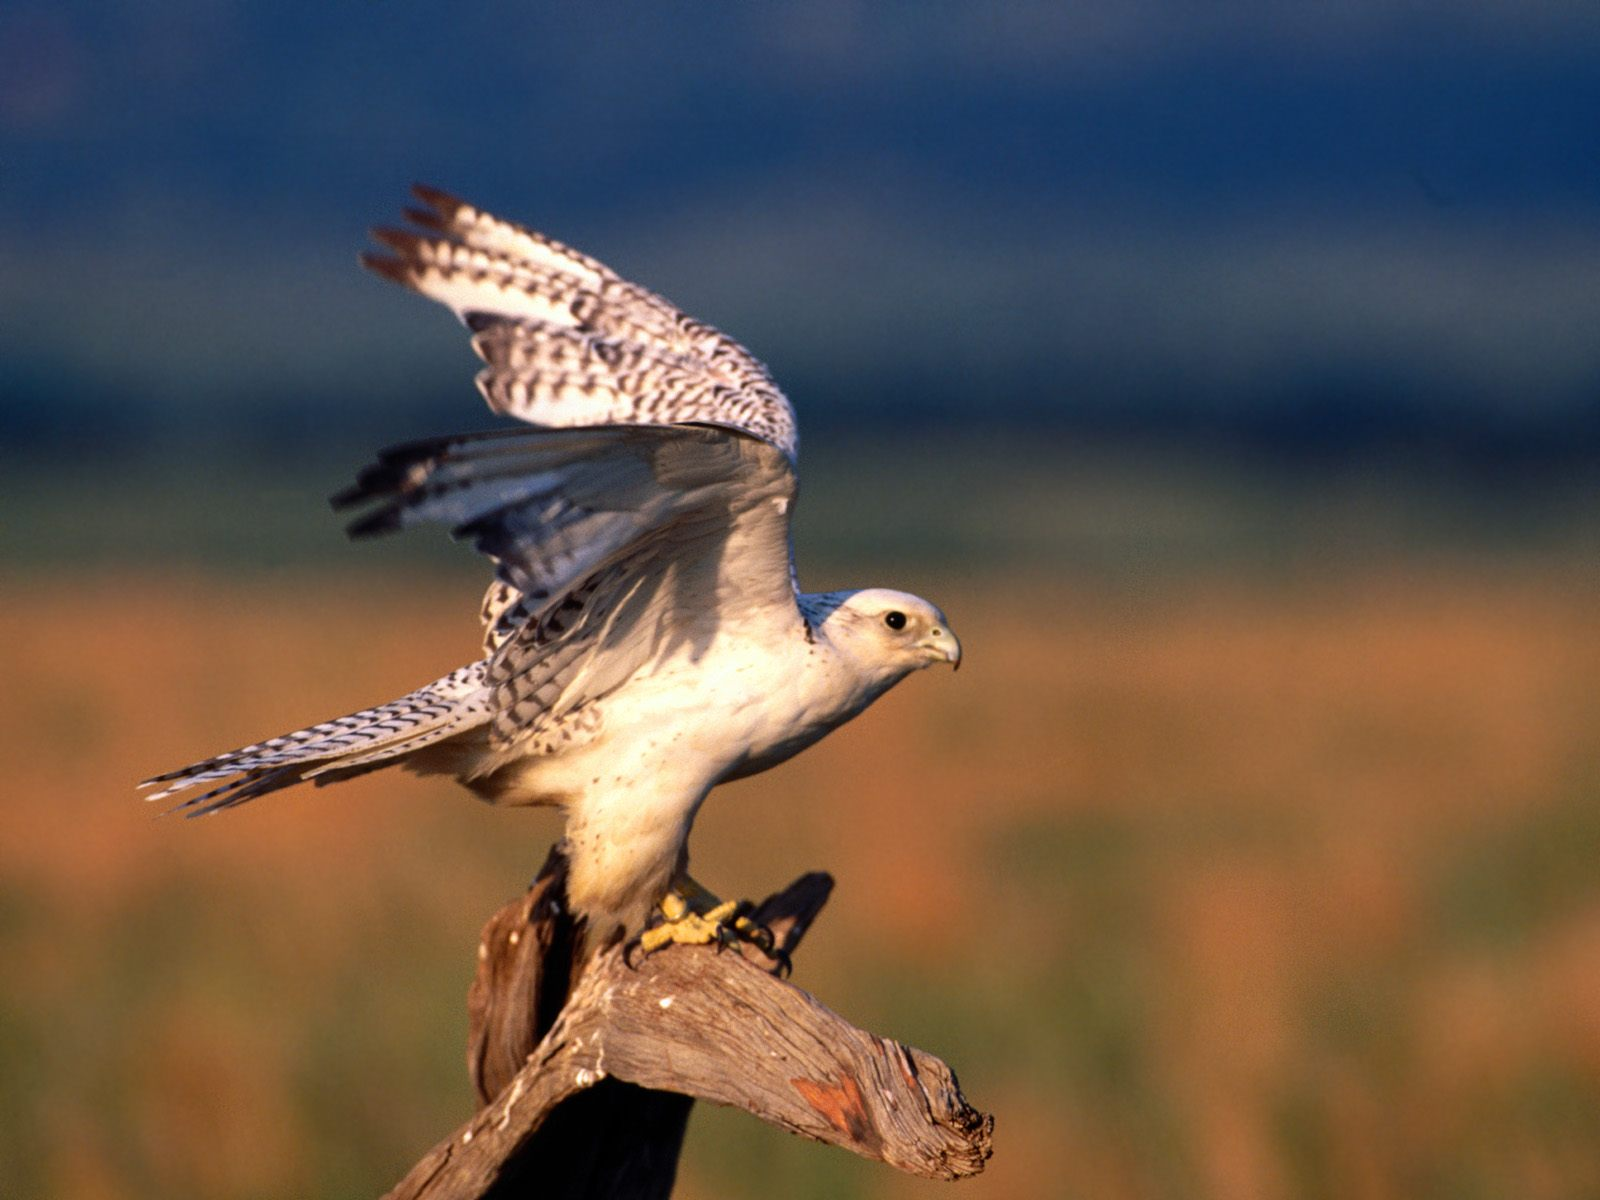 Falconiformes wallpapers